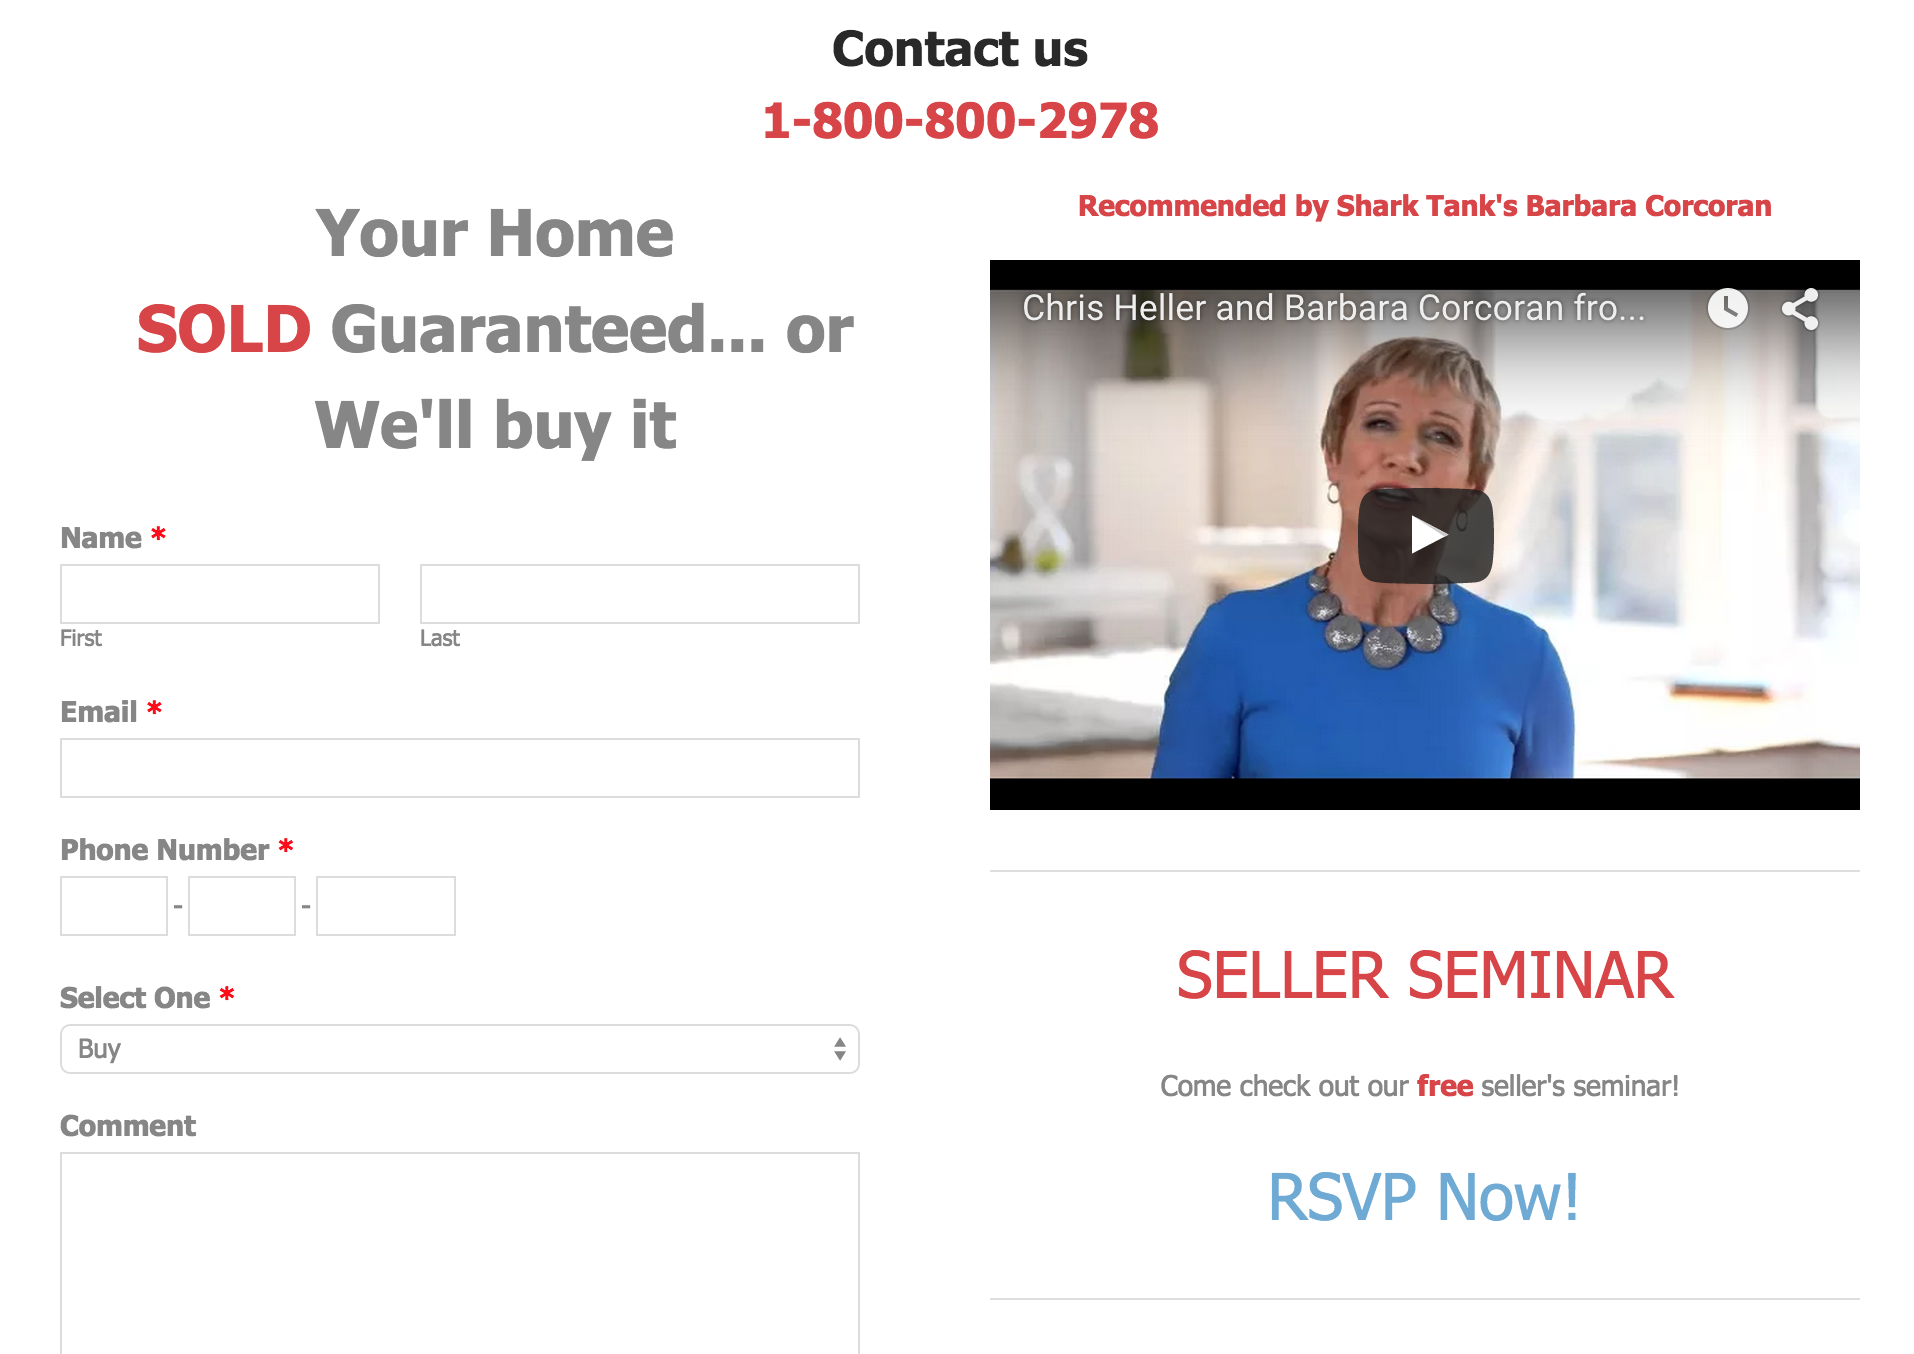 Screen shot showing guaranteed home sale offer that appears on askhellerthehomeseller.com alongside an endorsement of Chris Heller by Barbara Corcoran.